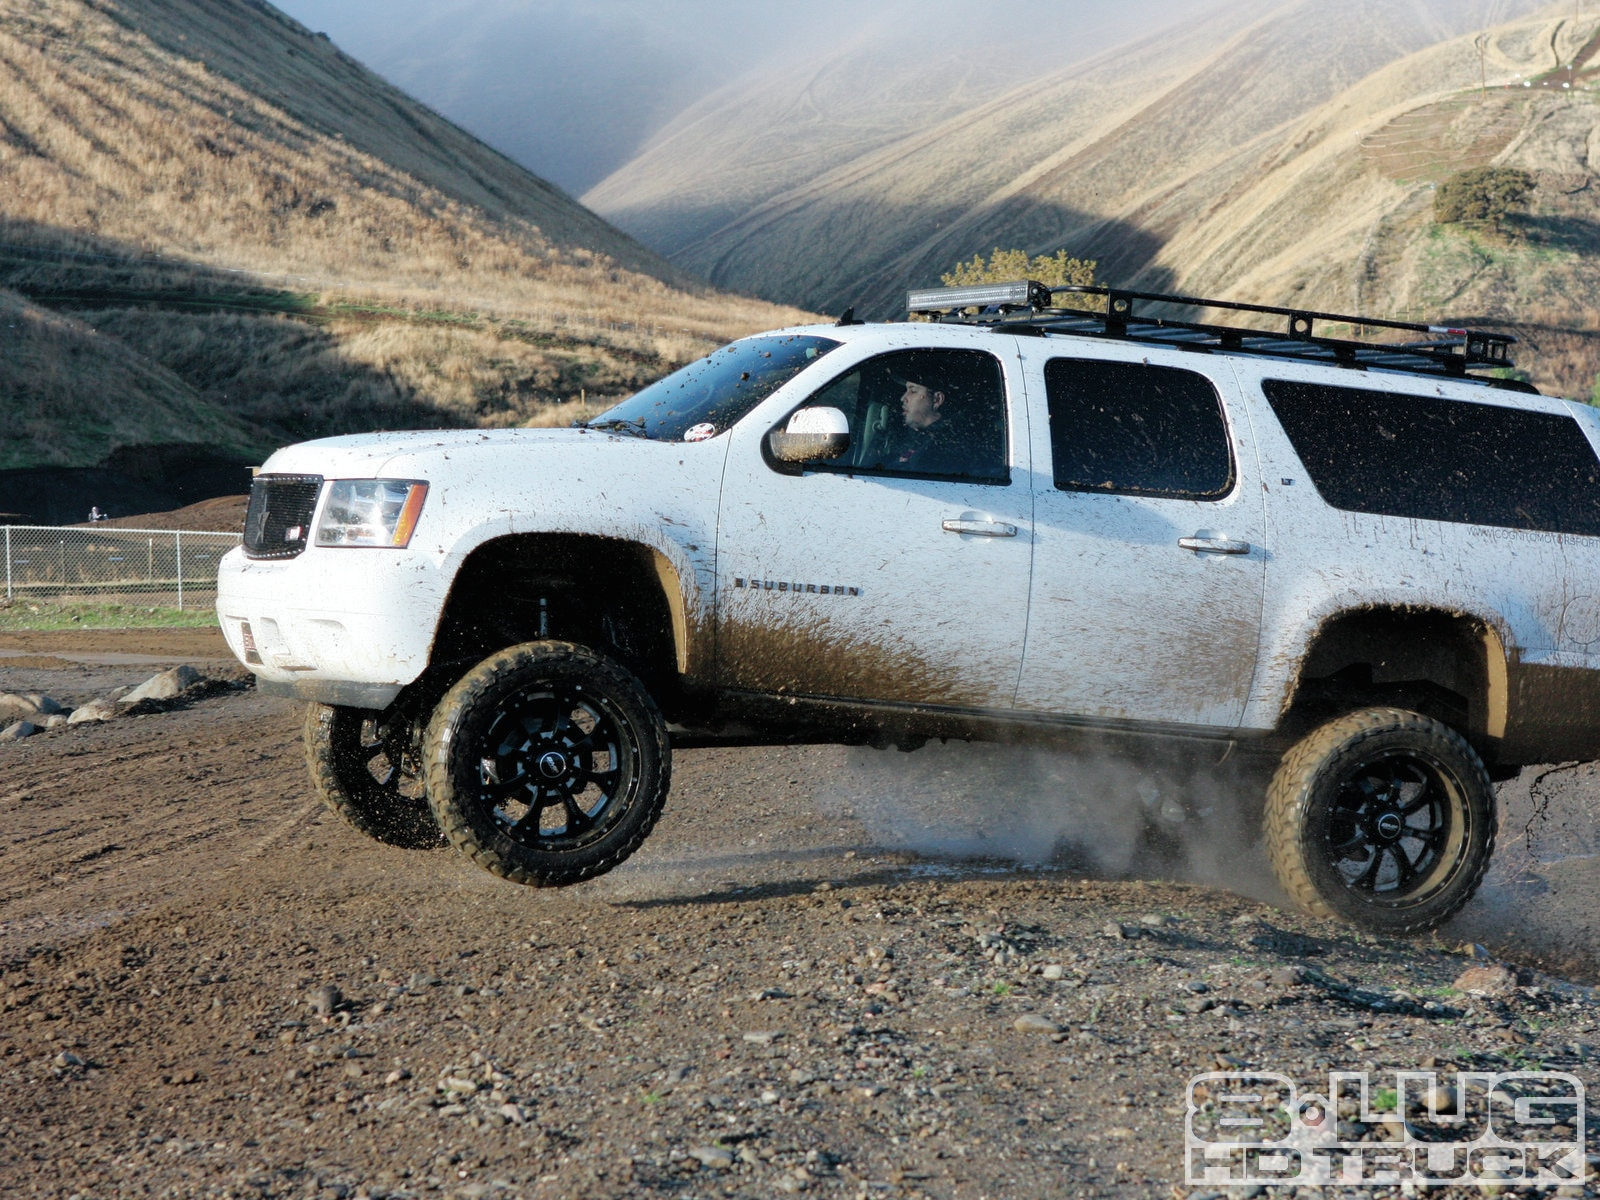 The Burb 2007 Chevy 2500 Suburban Photo Image Gallery